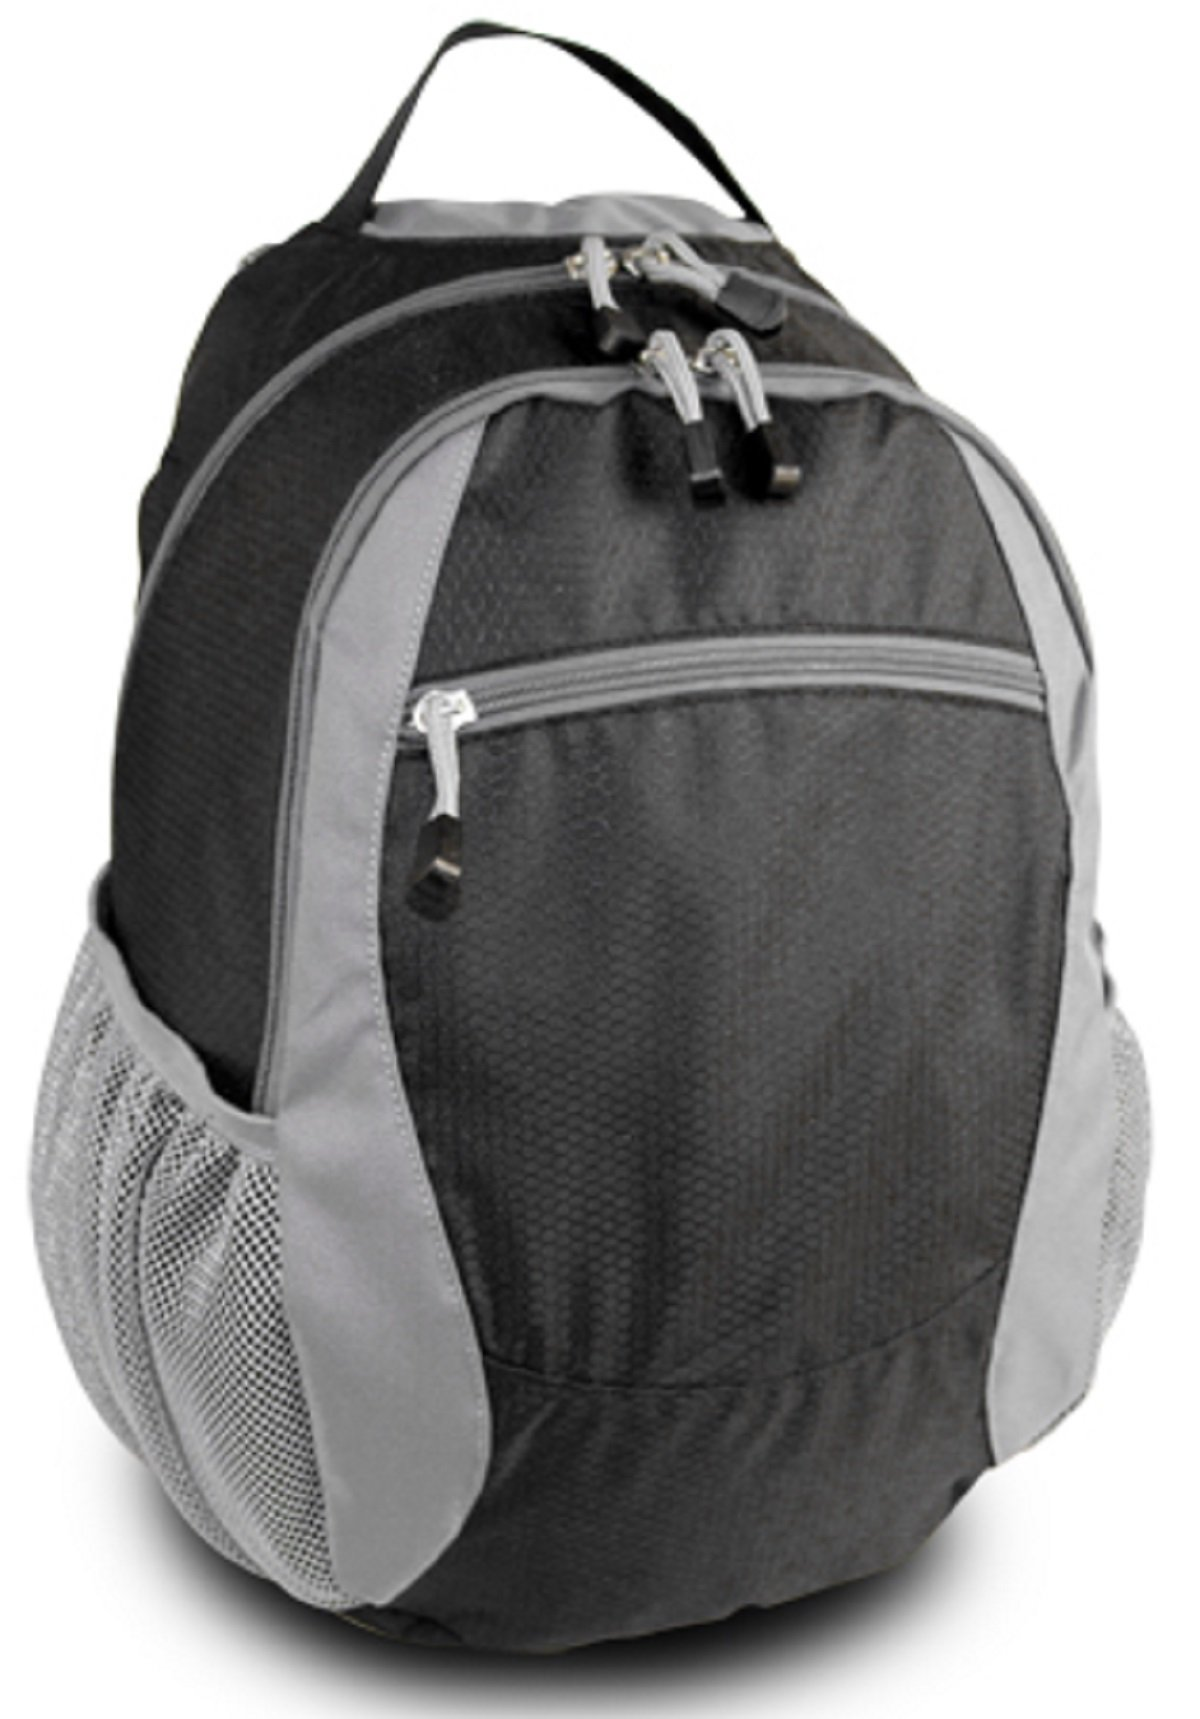 CAMPUS BACKPACK, Black/Gray, Case of 12